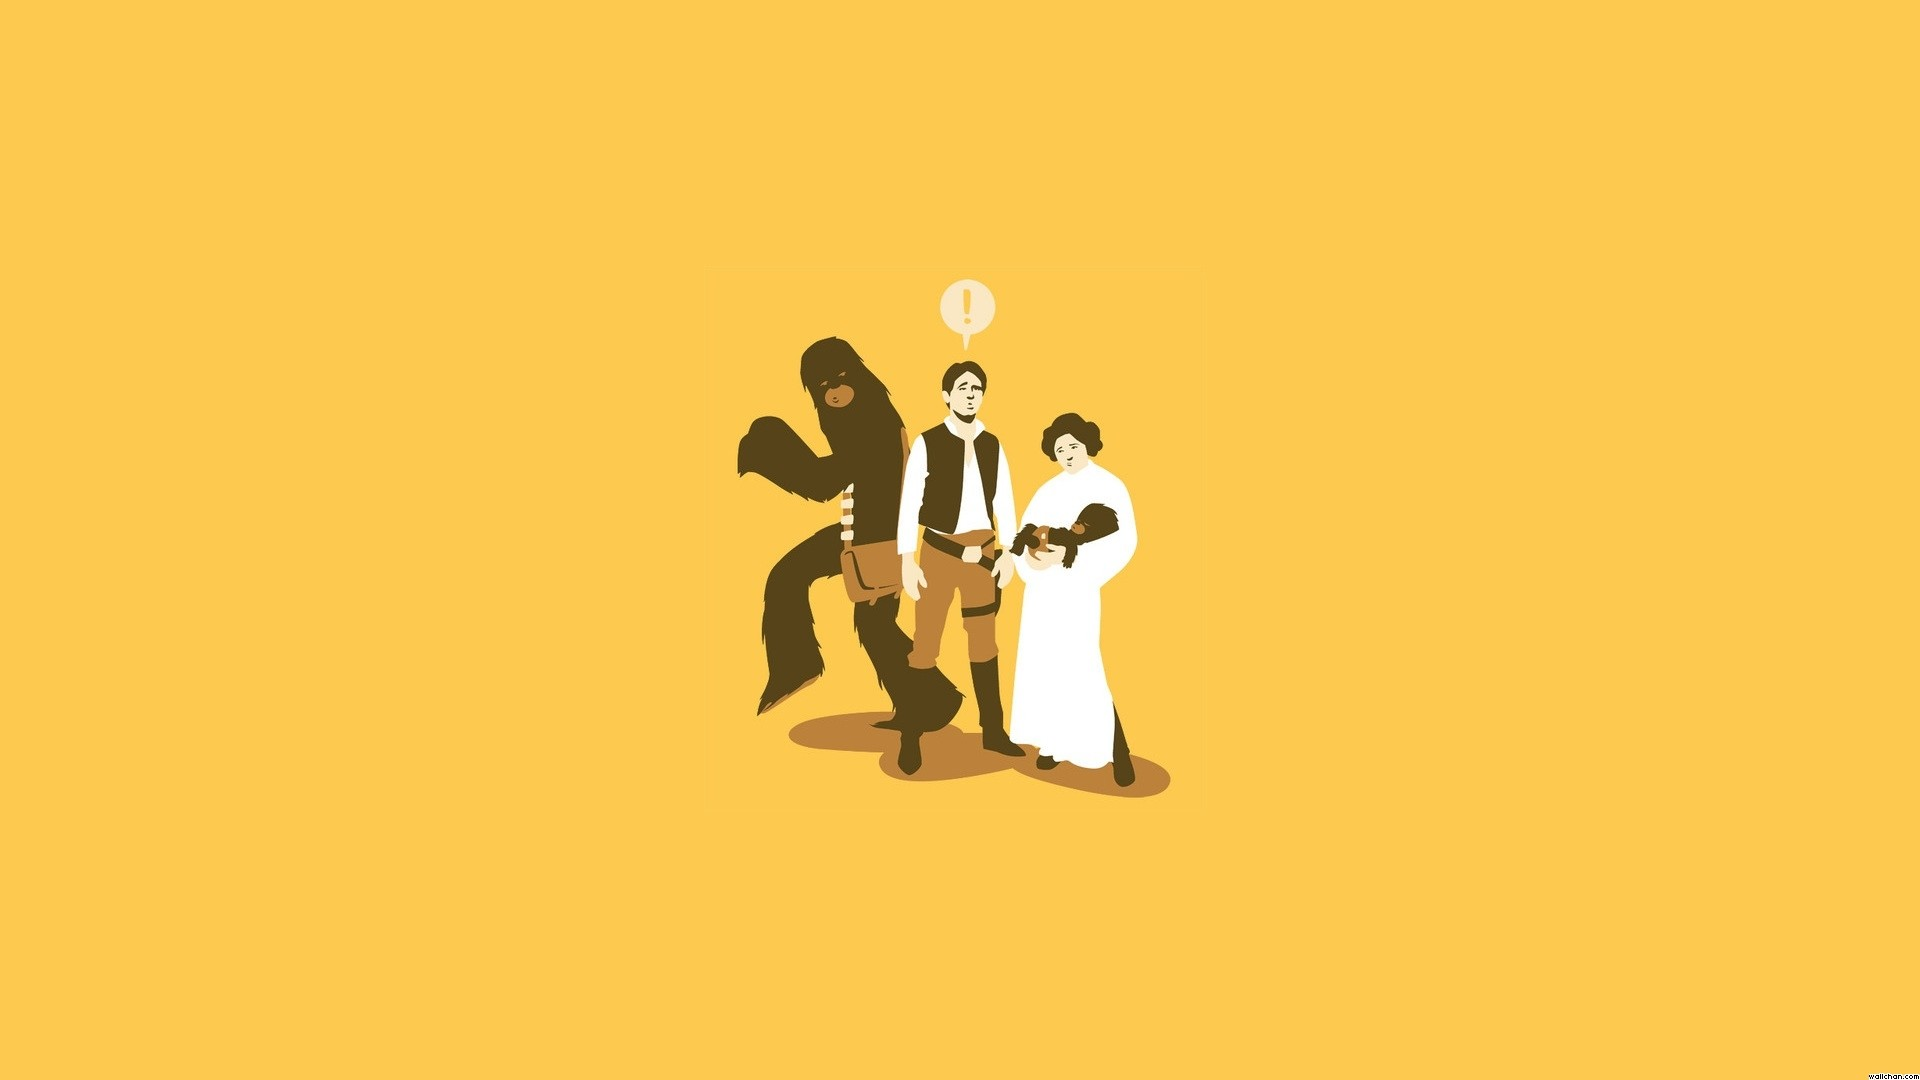 1920x1080 Star Wars images Funny Han, Leia Chewie Wallpaper HD wallpaper and  background photos